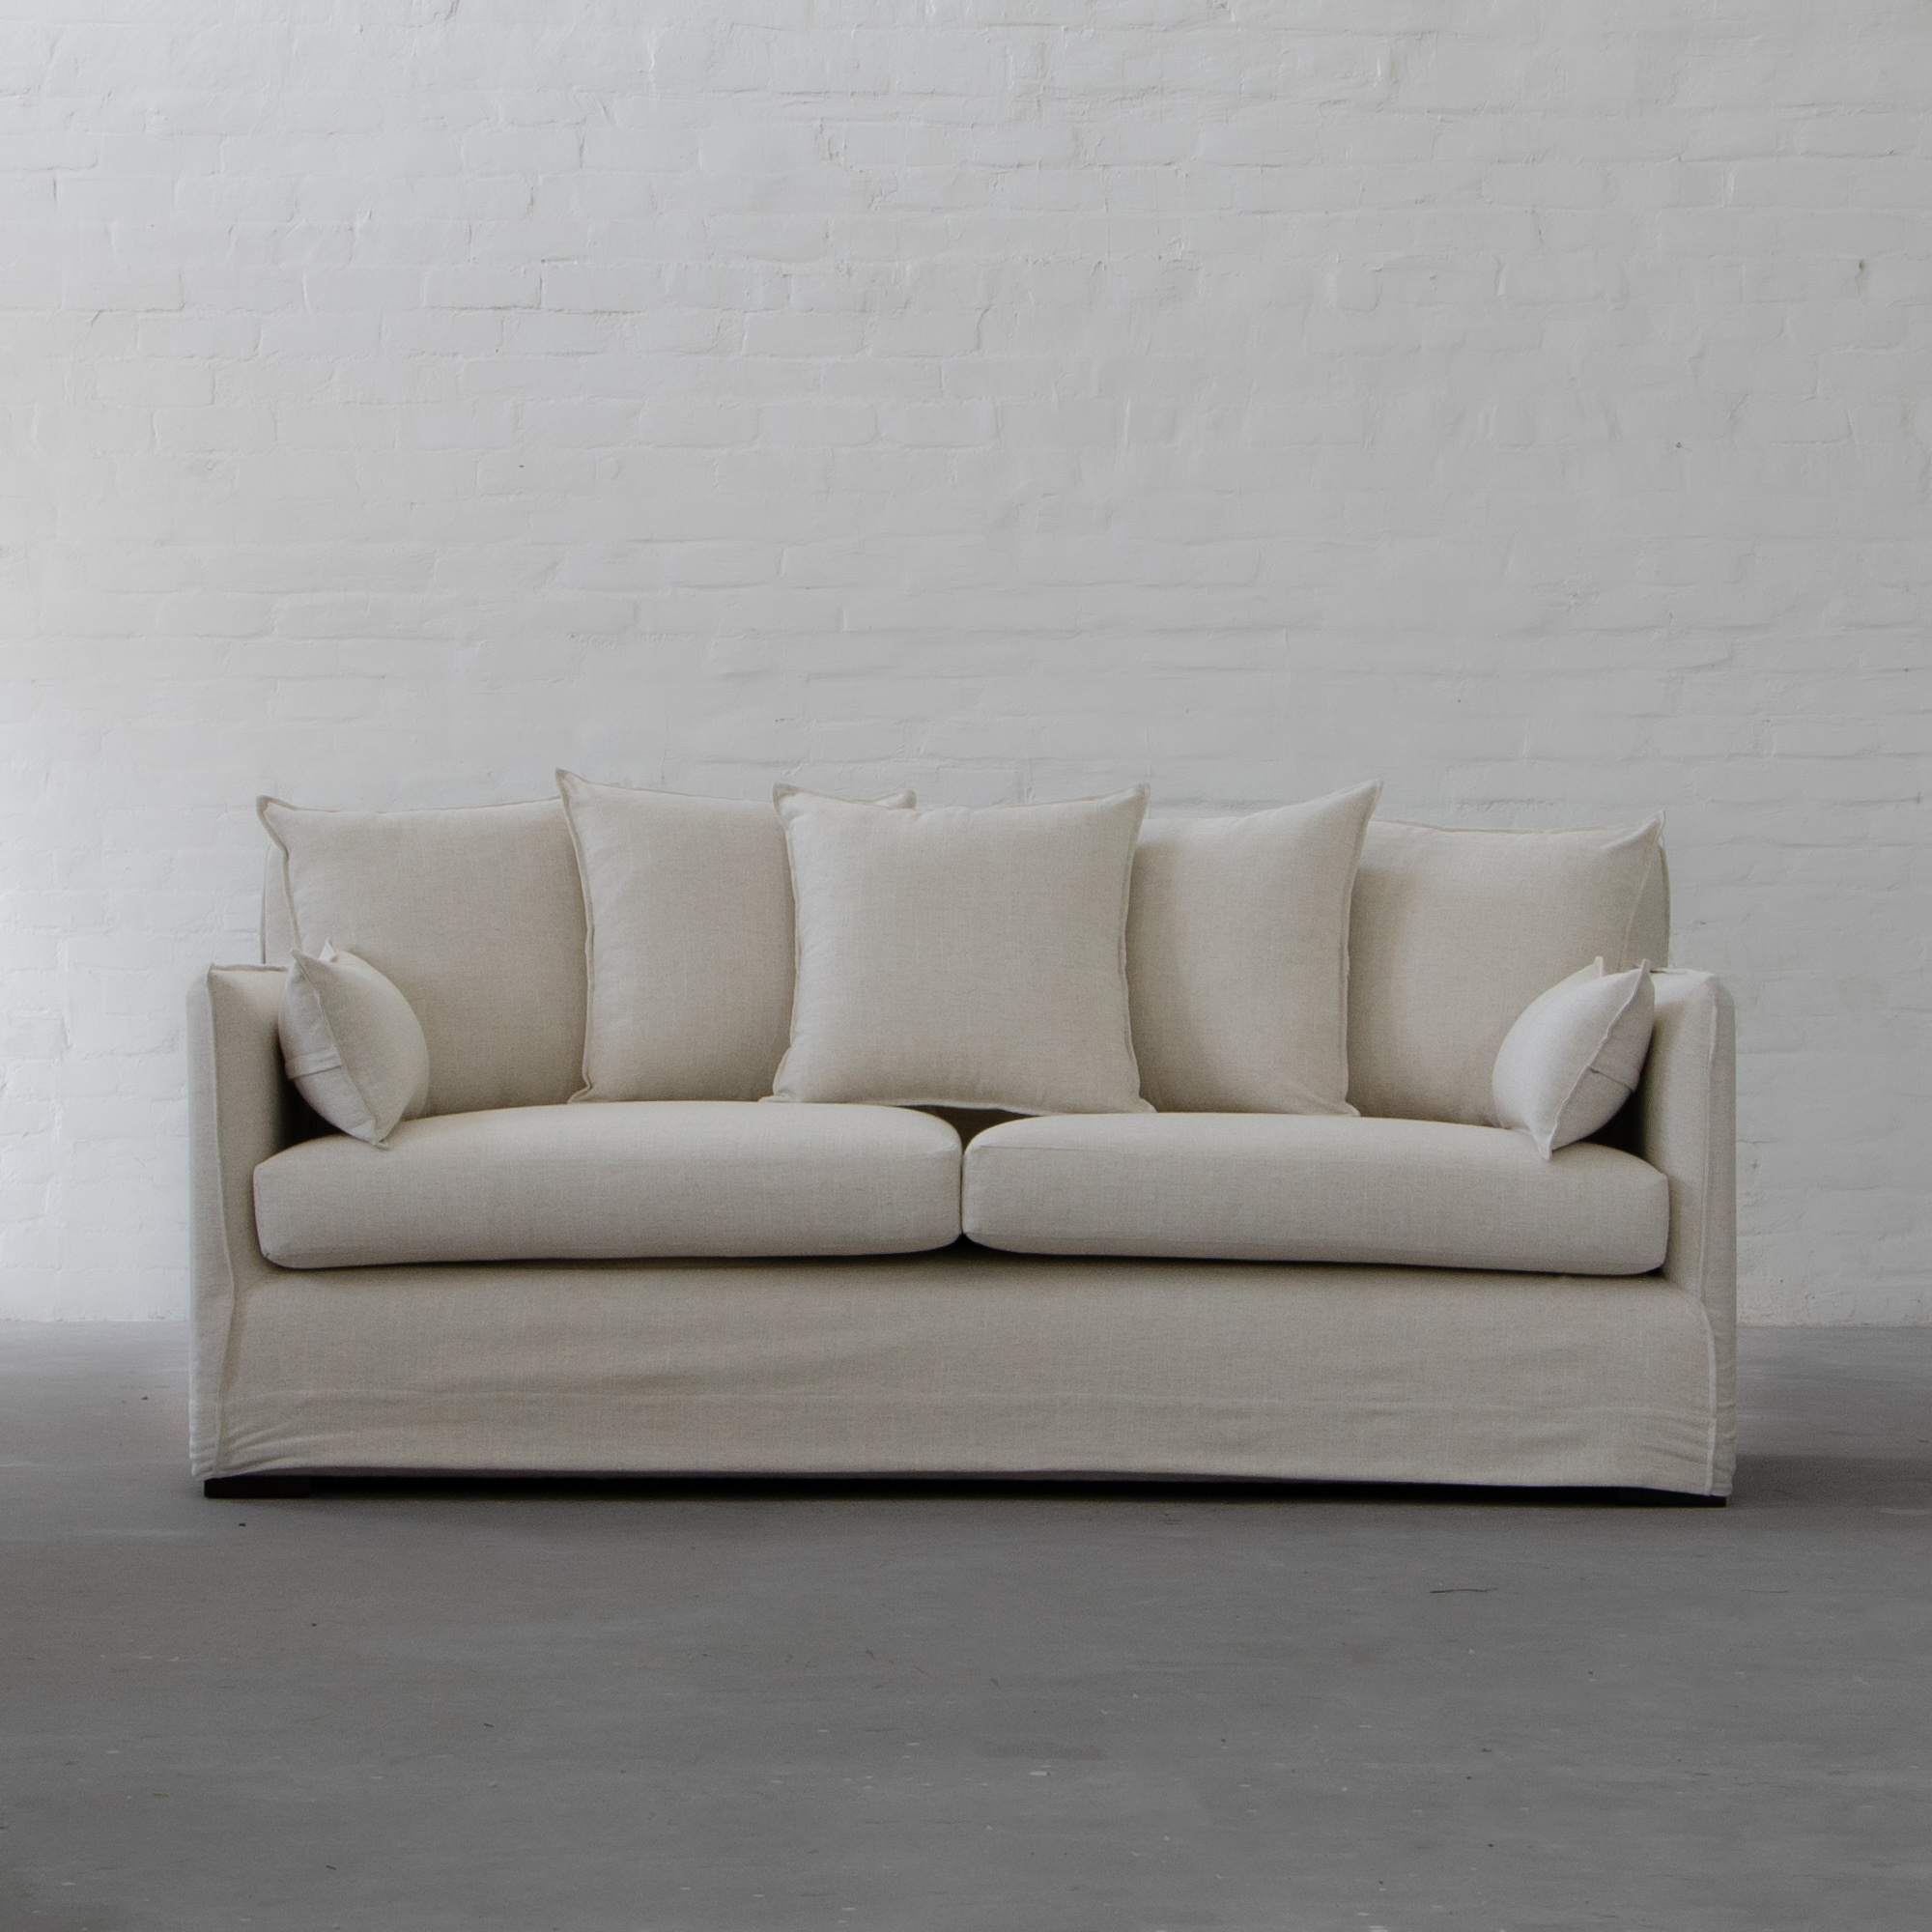 Magnificent Long Island Slipcover Sofa Collection Interior Design Ideas Clesiryabchikinfo